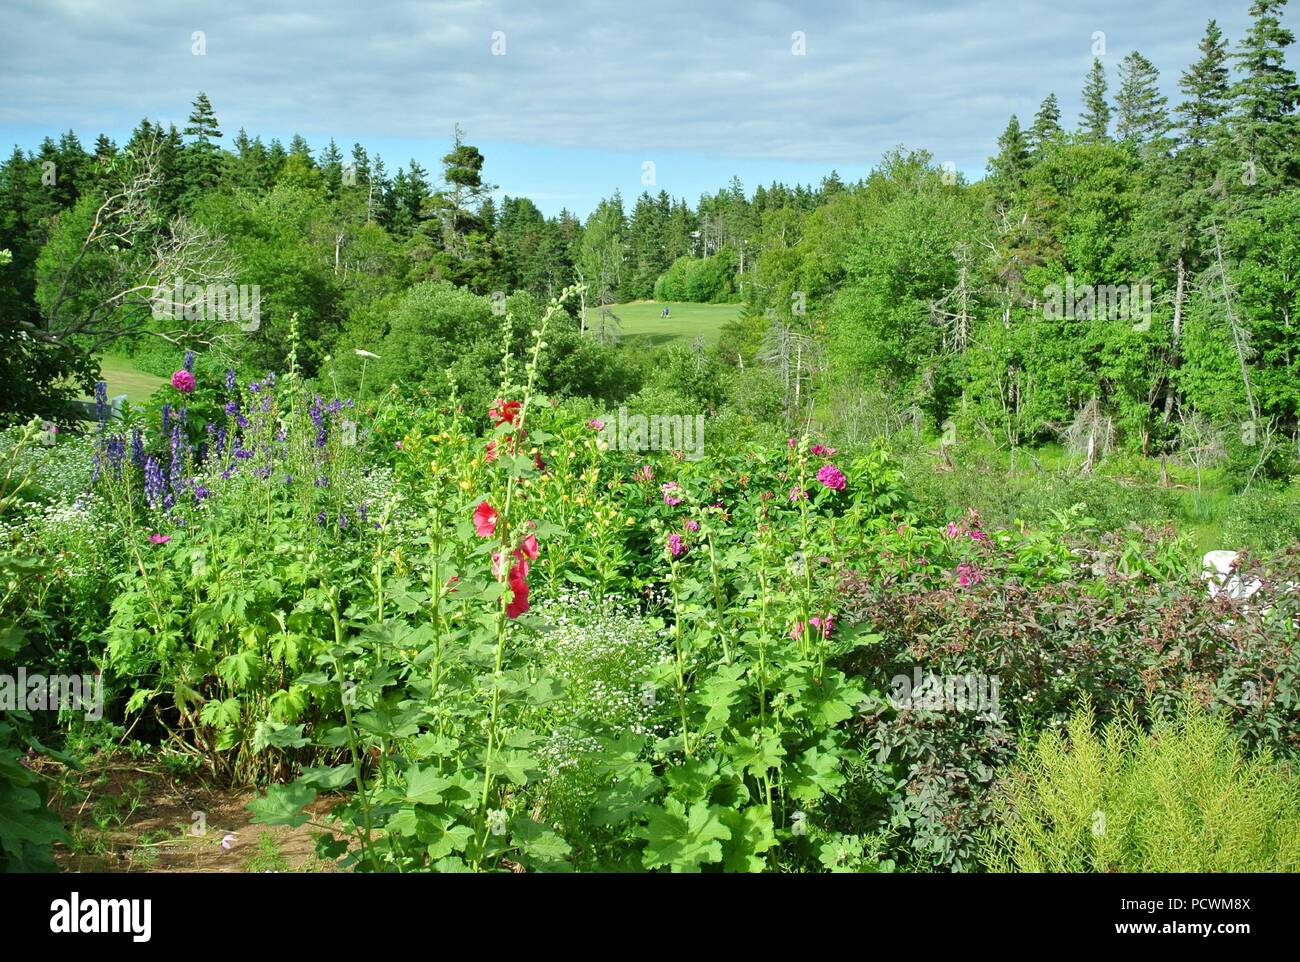 A view from Green Gables House area on Green Gable Golf Course, Cavendish, Prince Edward Island, Canada. - Stock Image